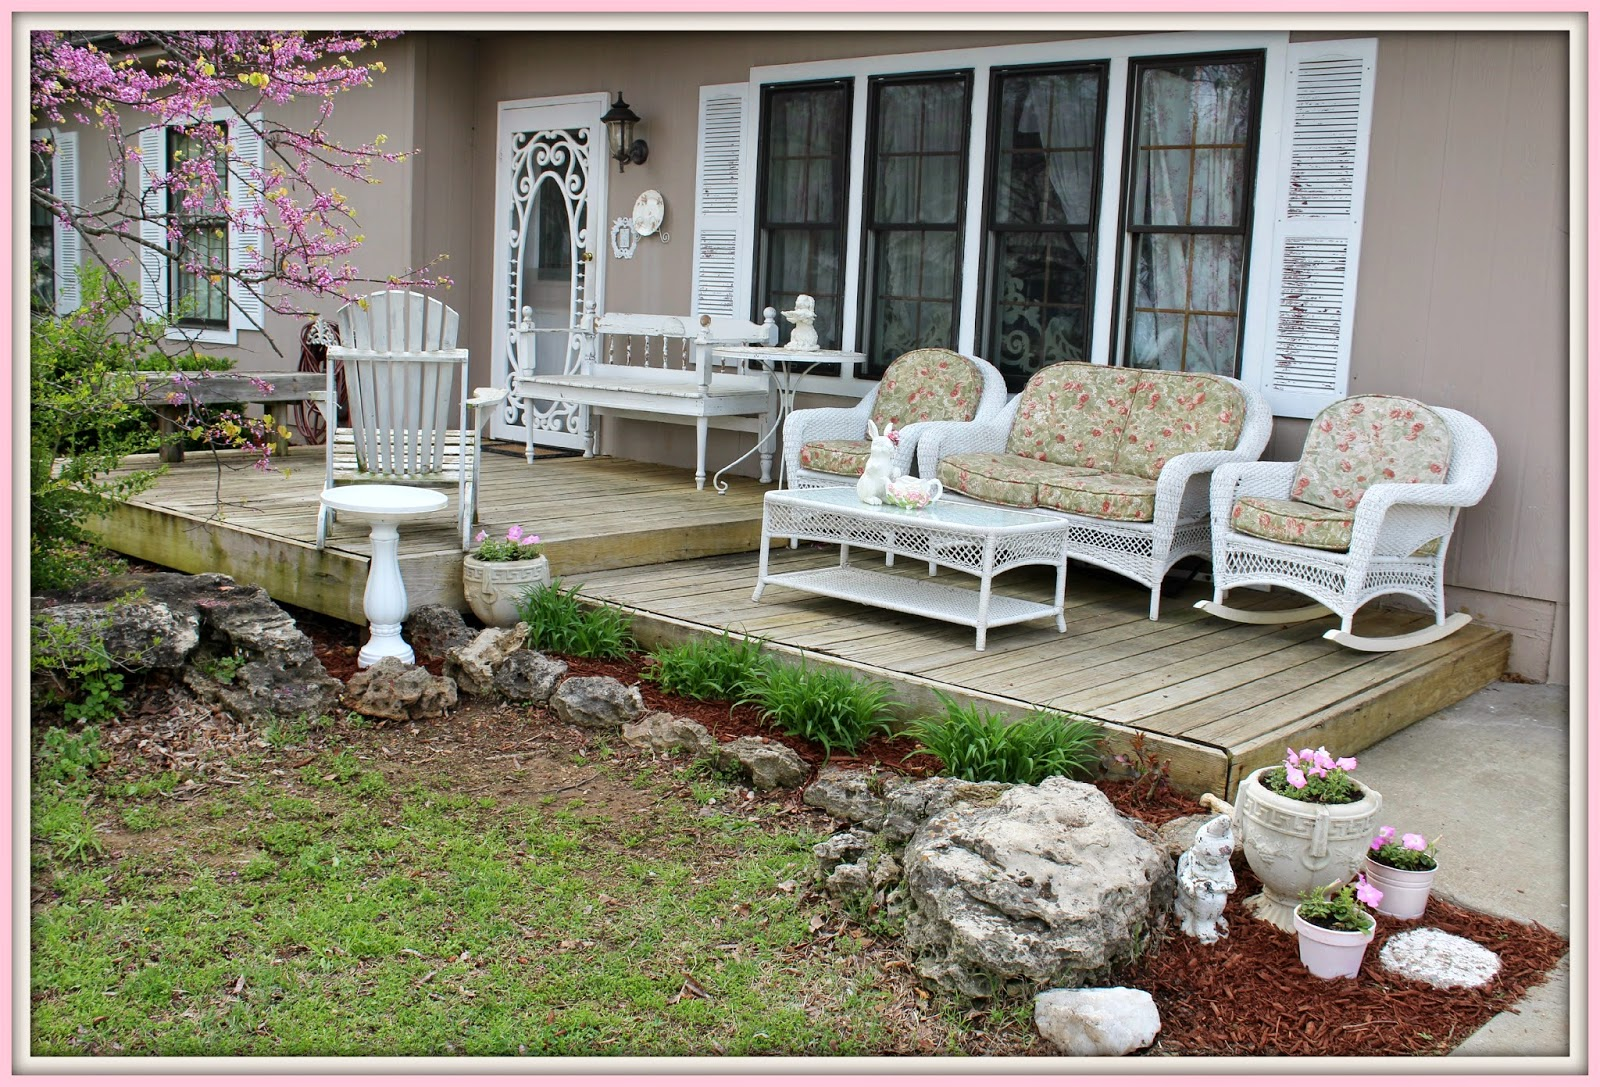 Olivia 39 s romantic home shabby chic front porch for Shabby chic porch ideas